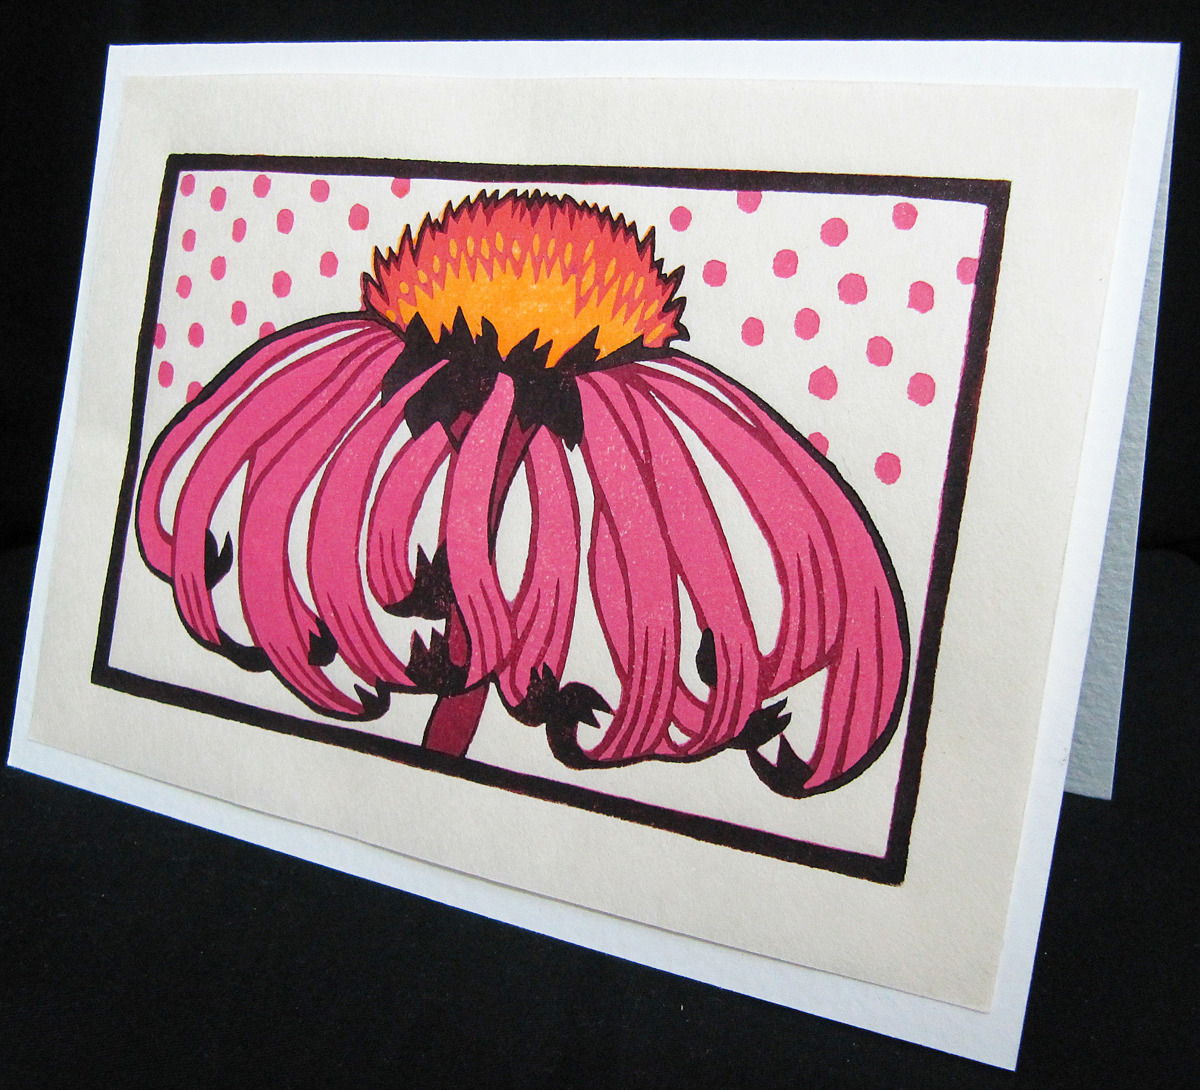 Coneflower (large view)